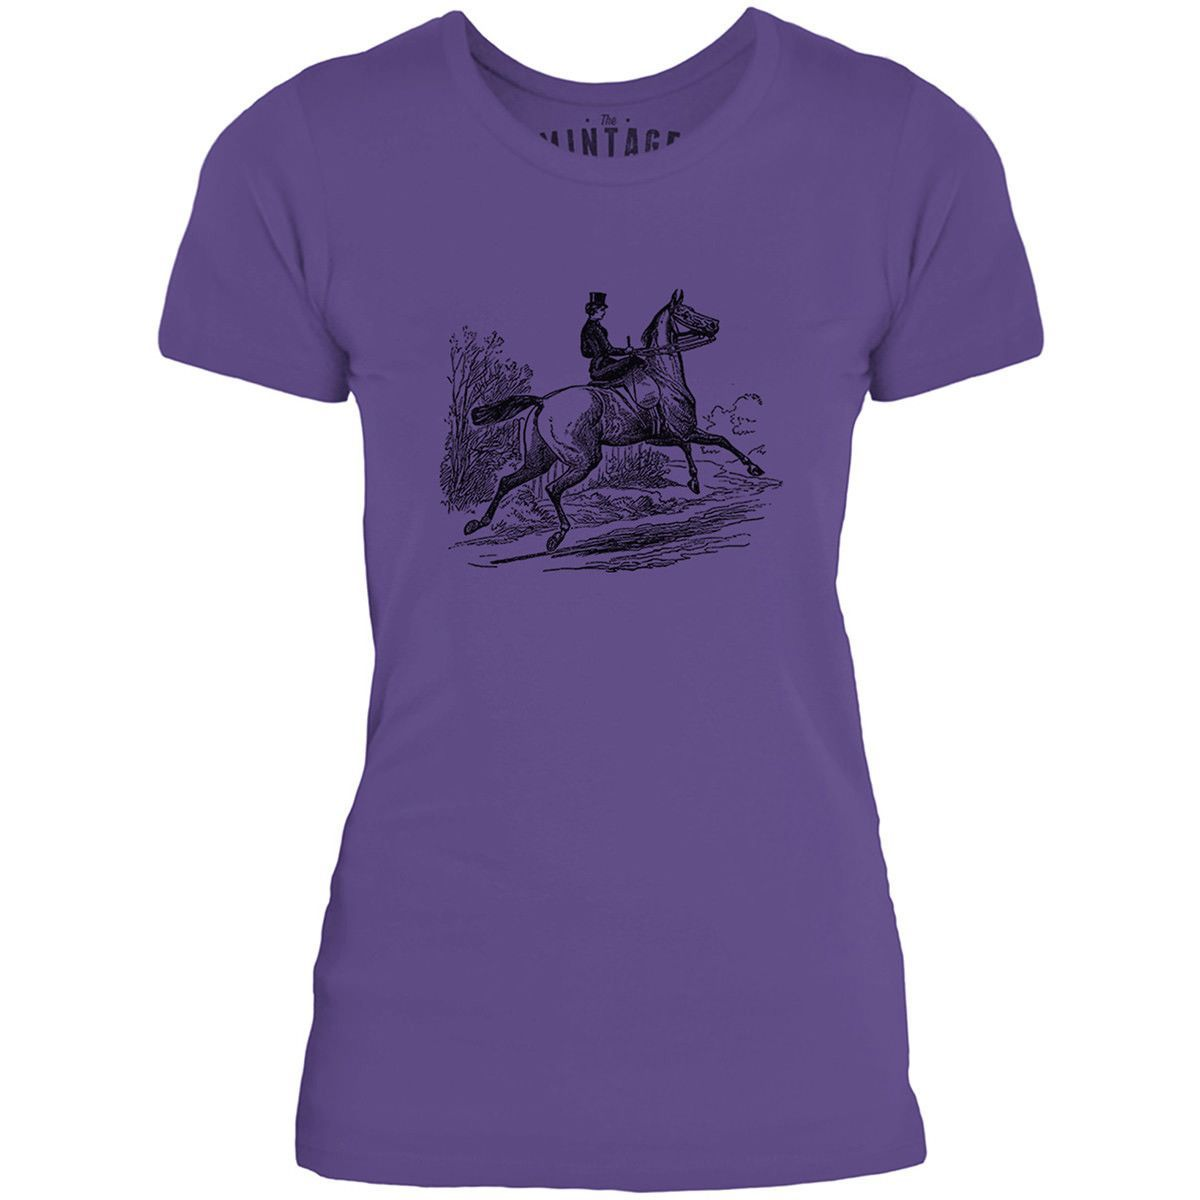 Mintage Riding a Horse Womens Fine Jersey T-Shirt